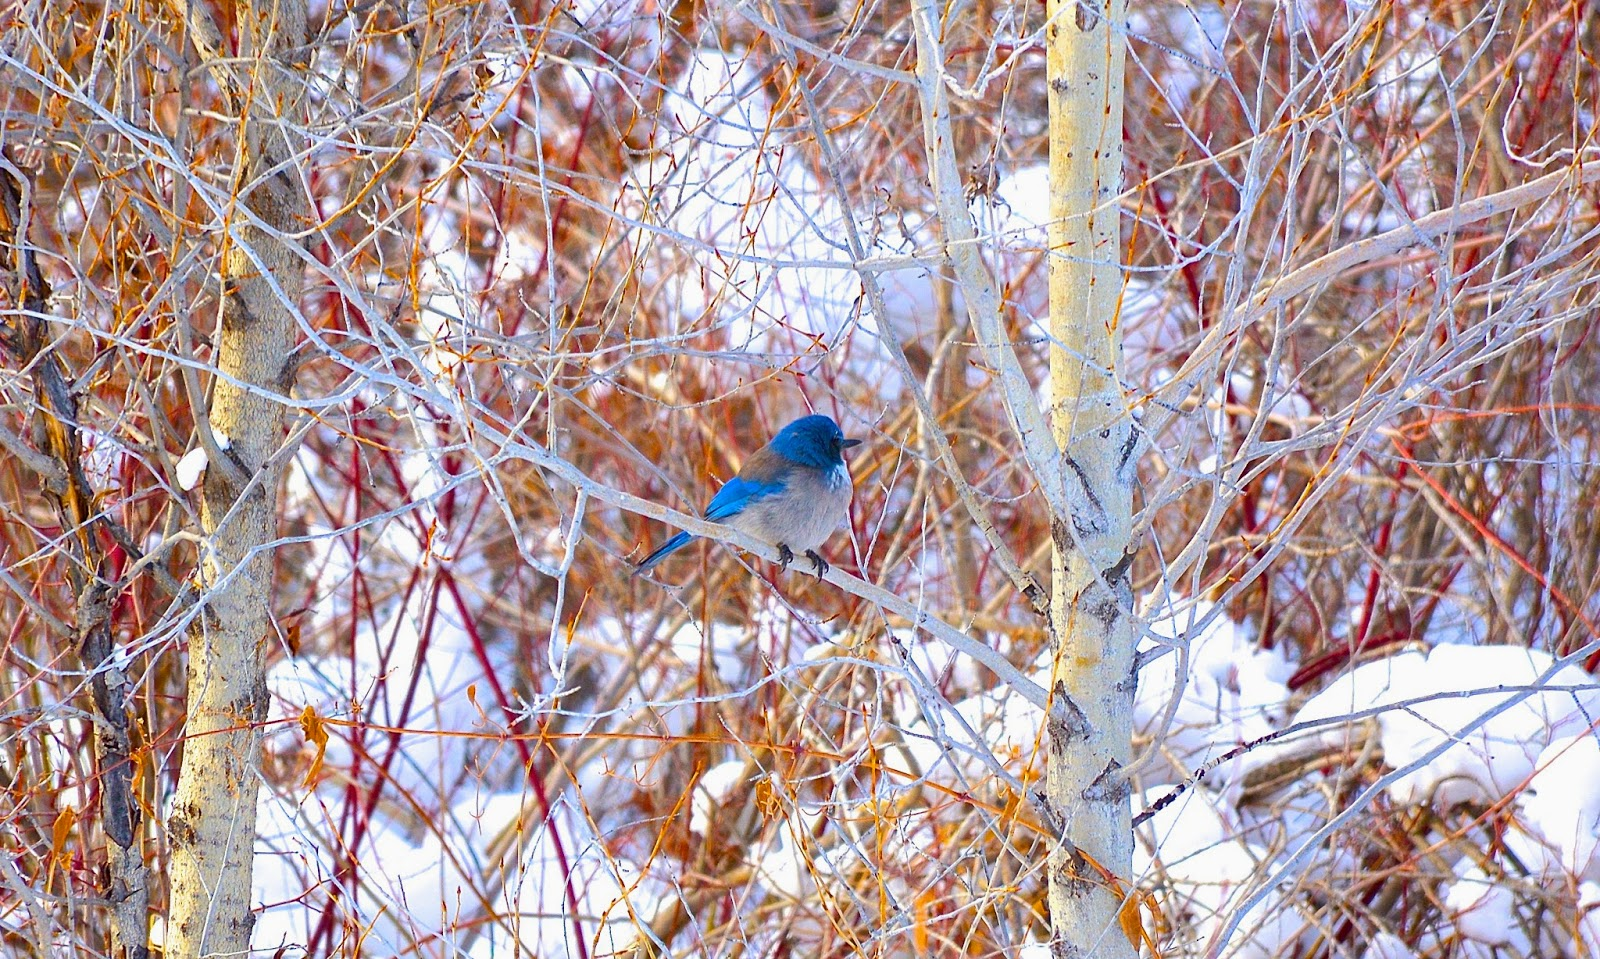 Western bluebird in Colorado